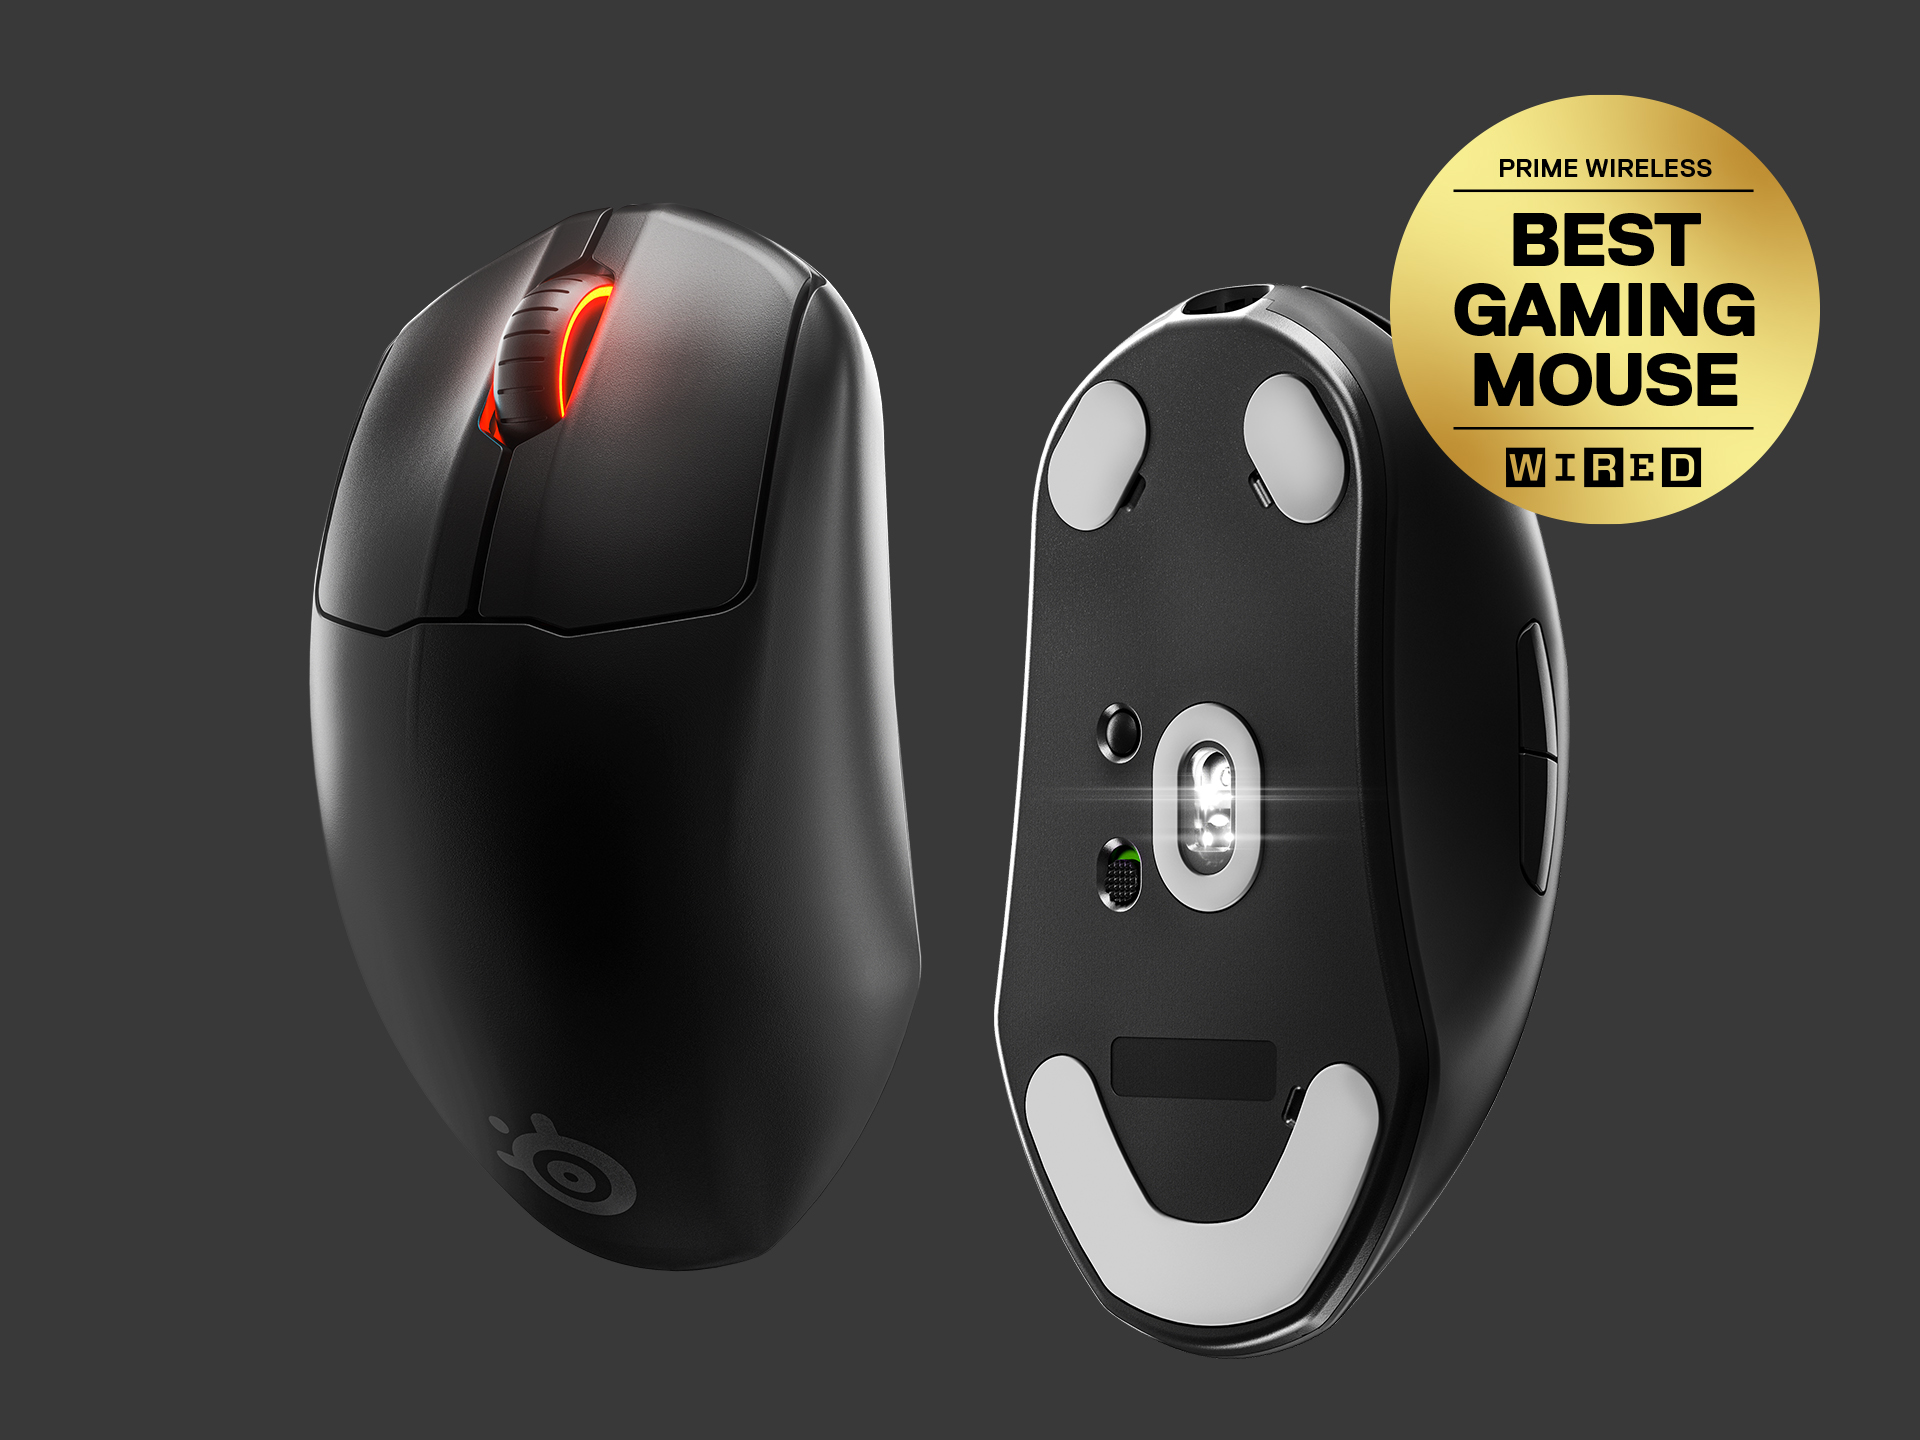 Prime Wireless named best wireless mouse from Wired